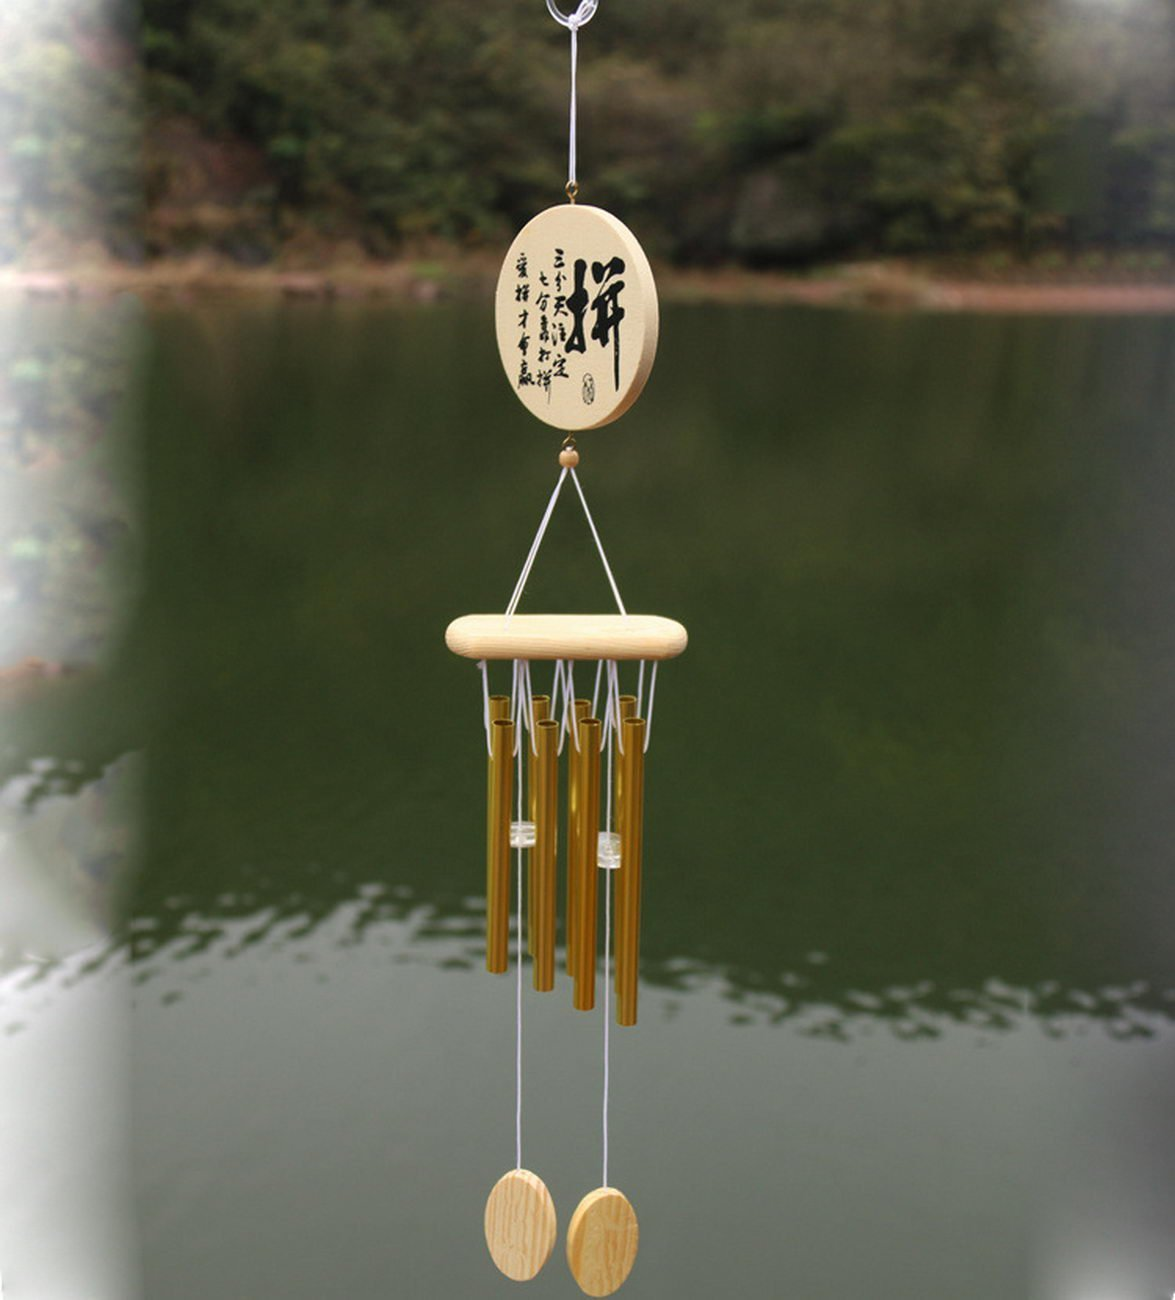 more wood wind chimes metal tube wind chimes blessing birthday gift birthday gift decoration birthday gift stores metal tube wind chimes decoration stores metal tube wind chimes blessing